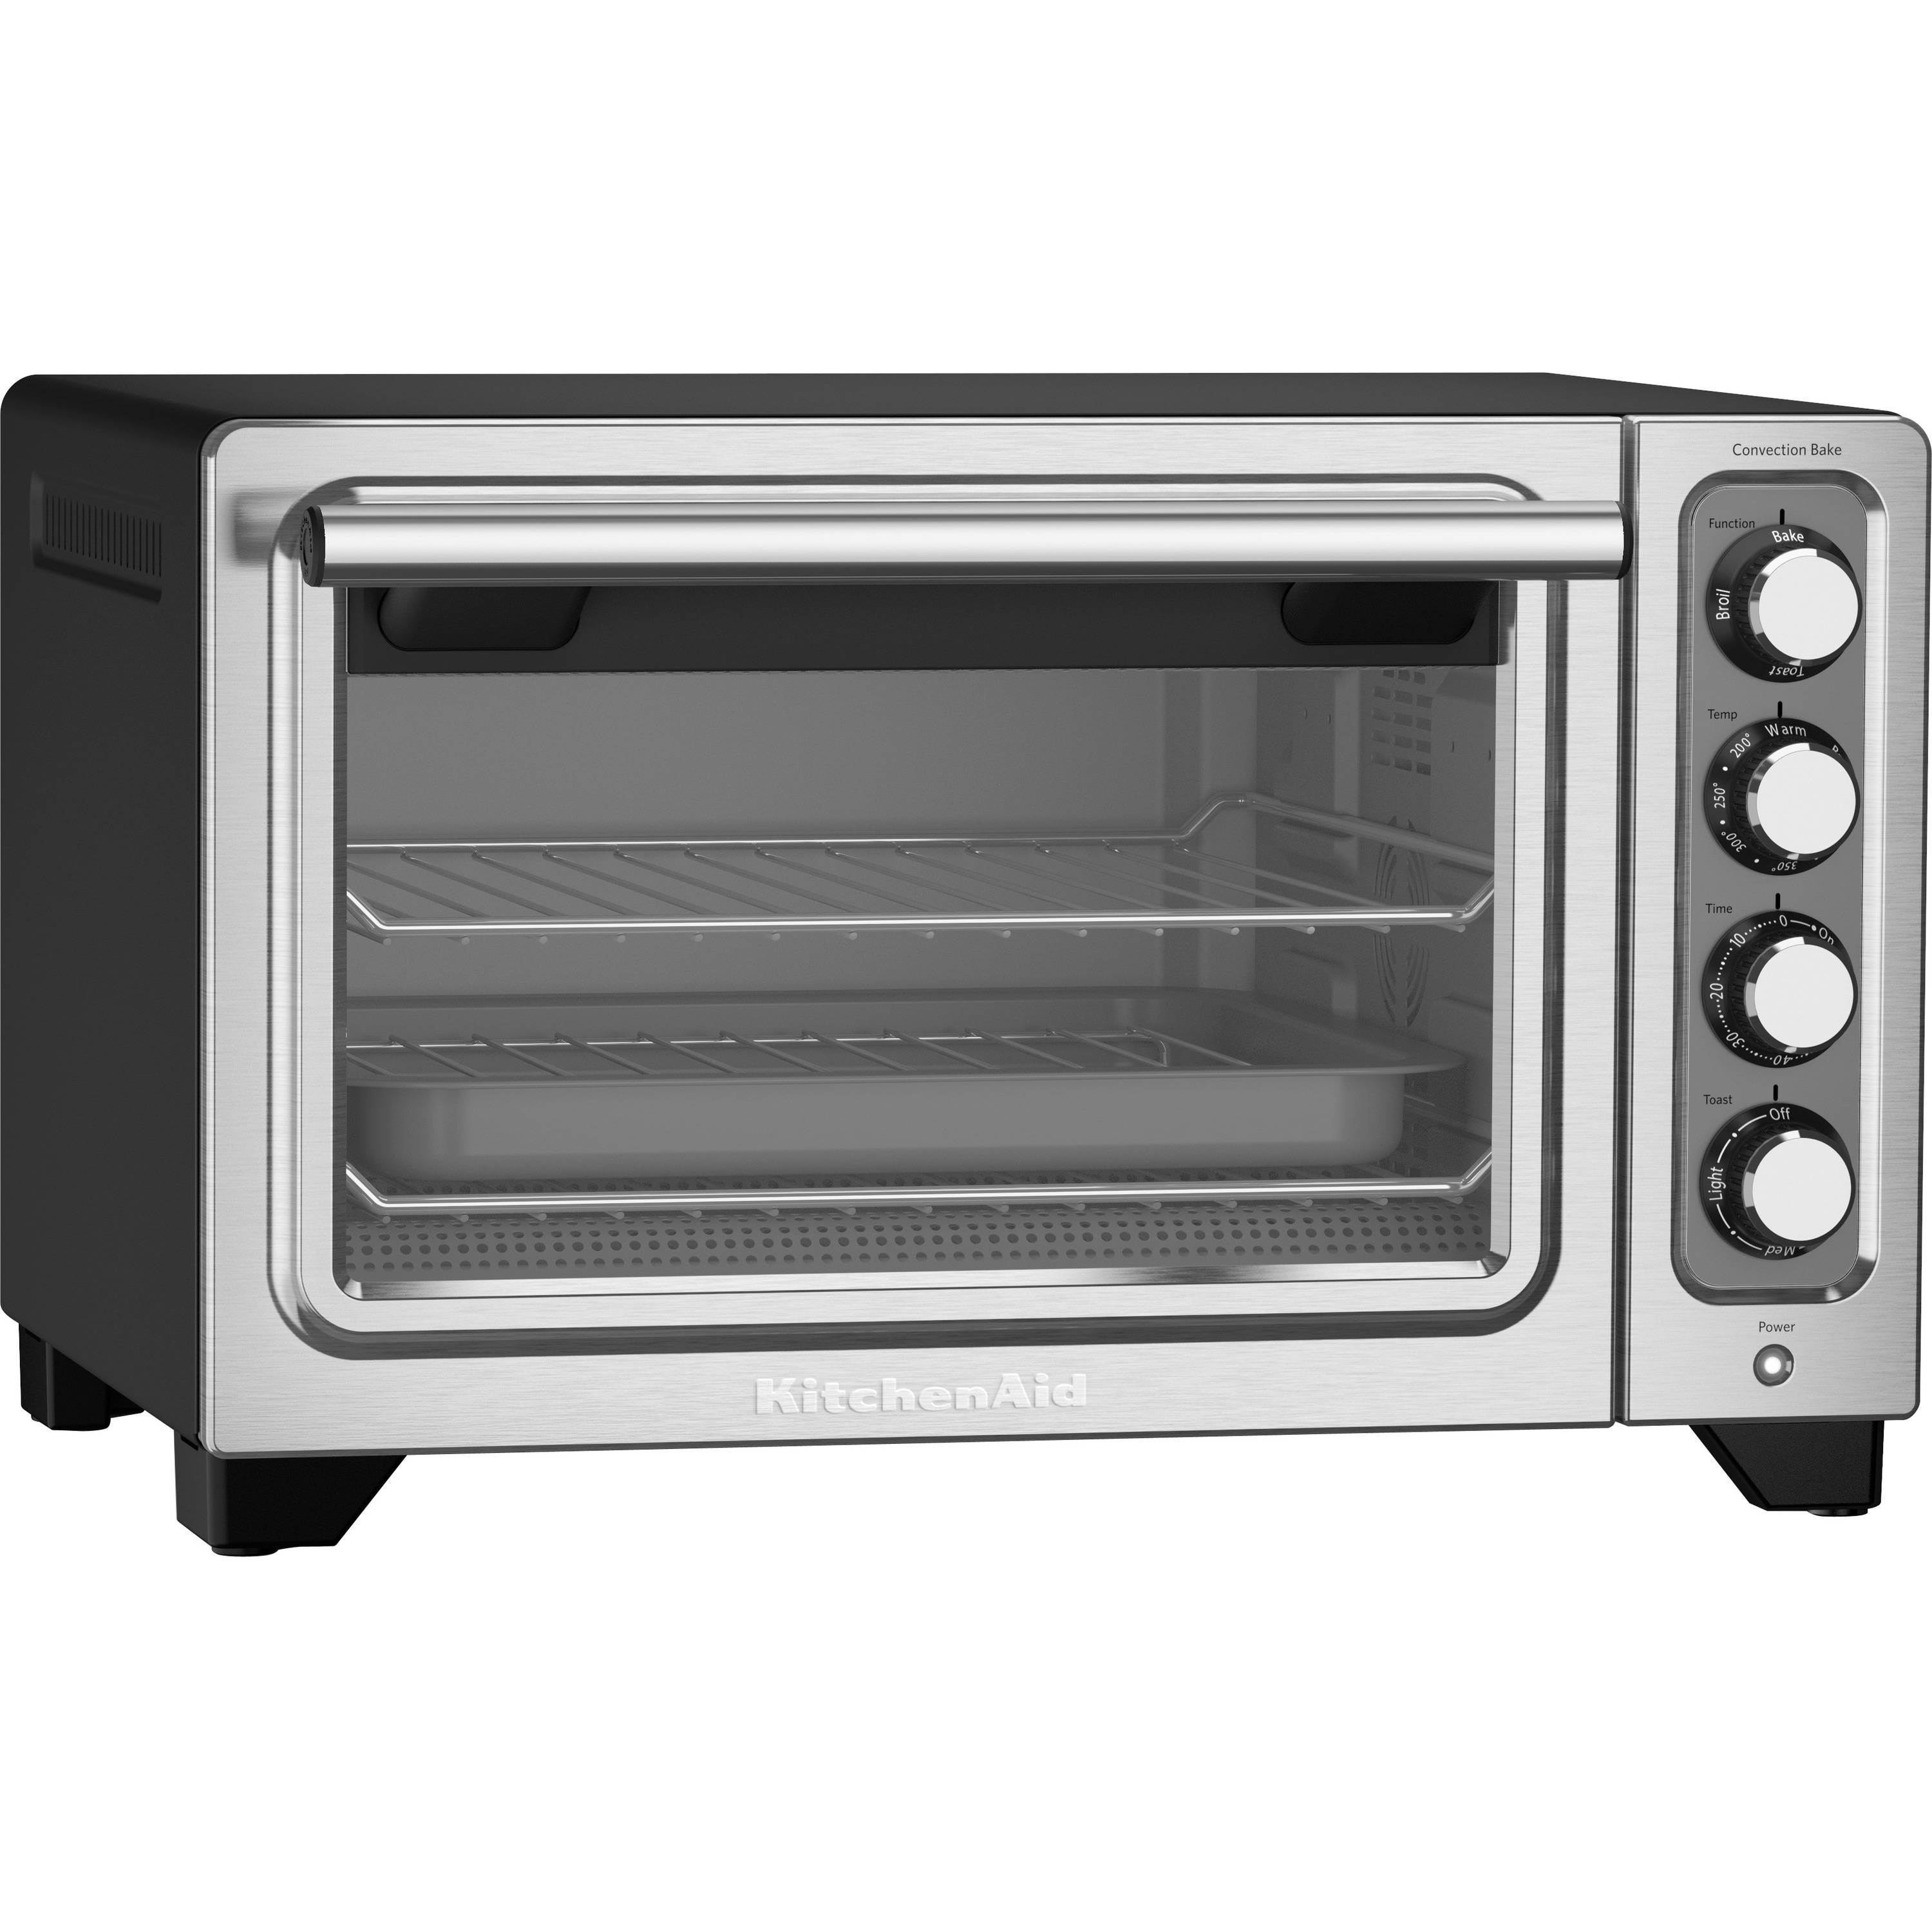 KitchenAid Compact Oven, Silver Stainless Steel